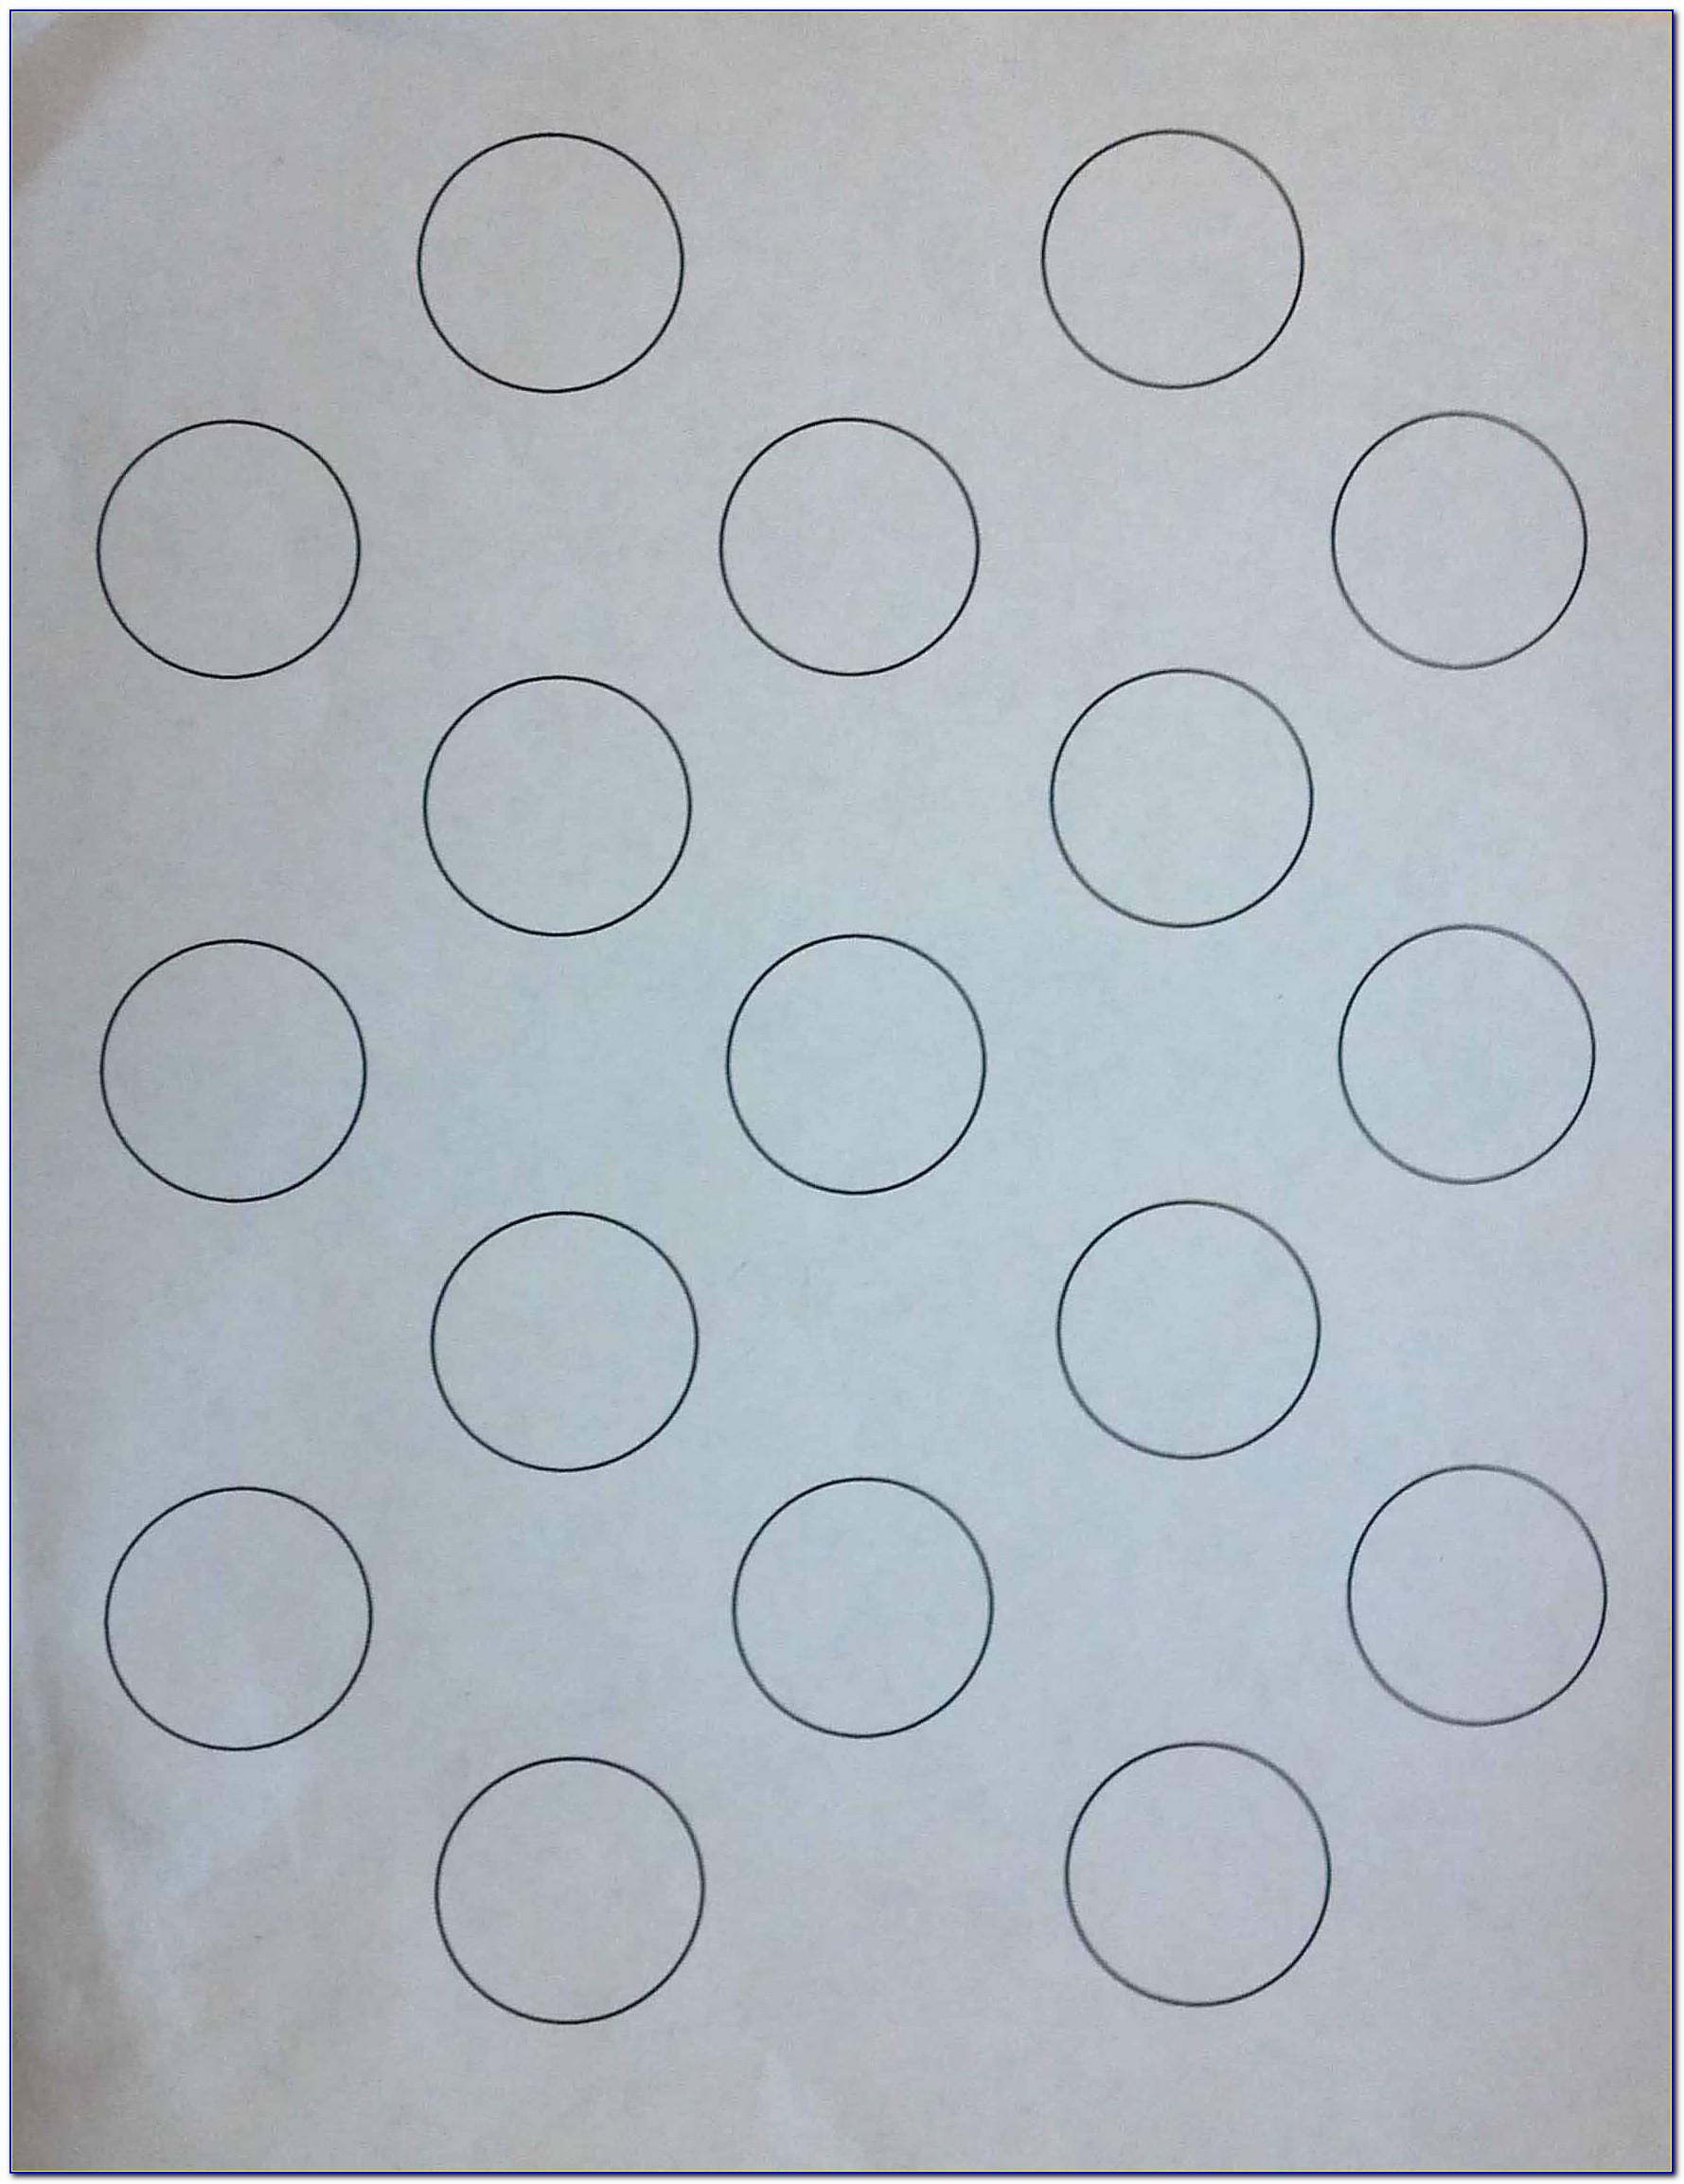 1.5 Inch Circle Template Word